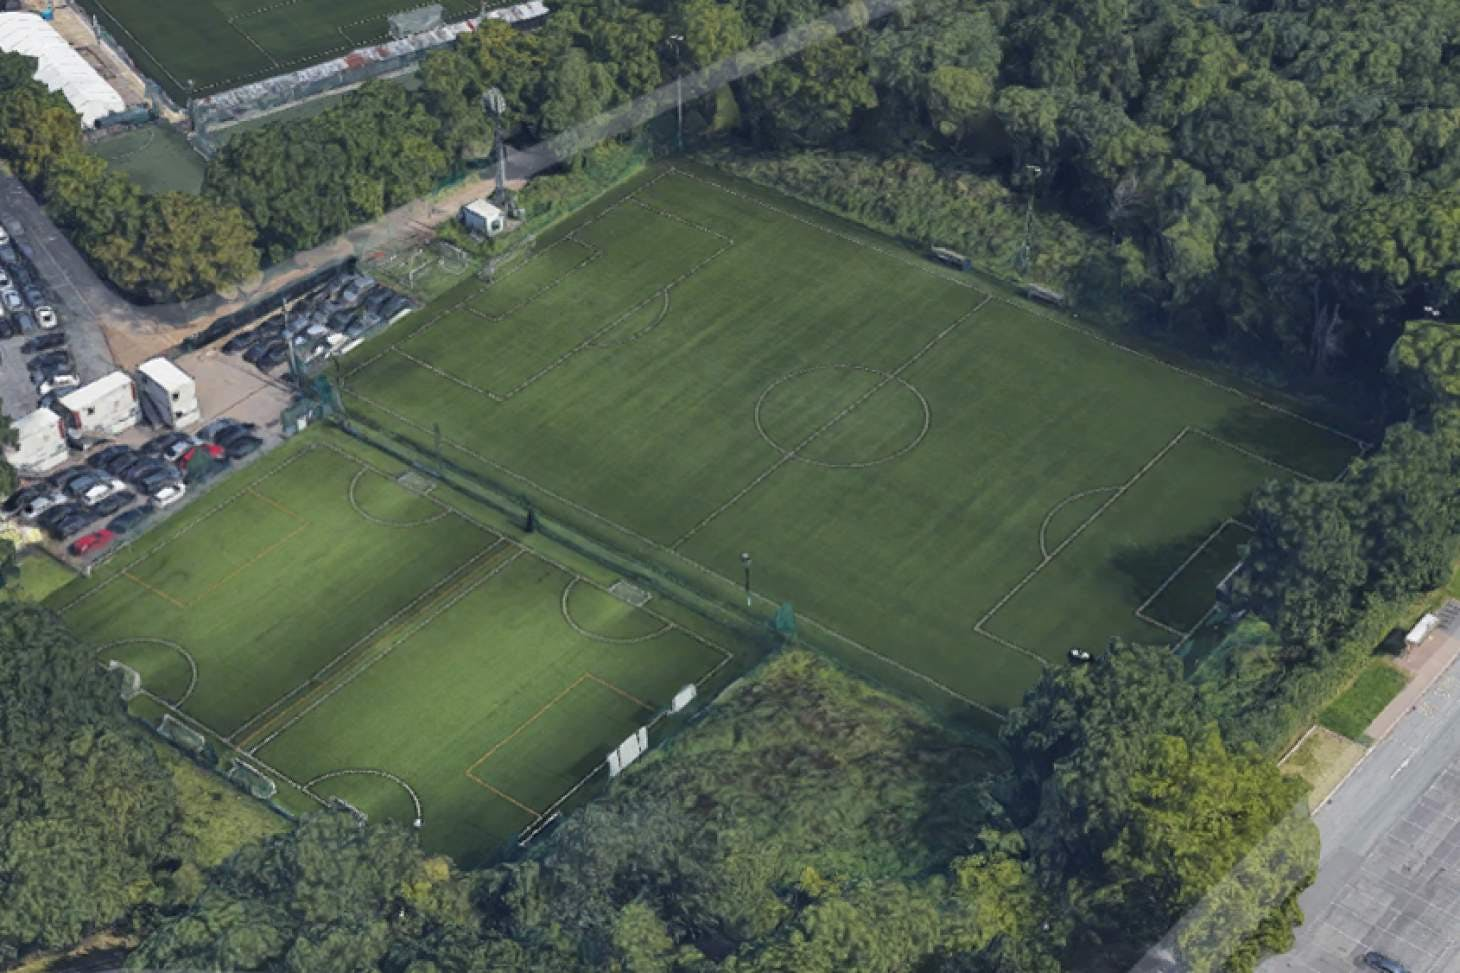 PlayFootball Bromley 6 a side   3G Astroturf football pitch